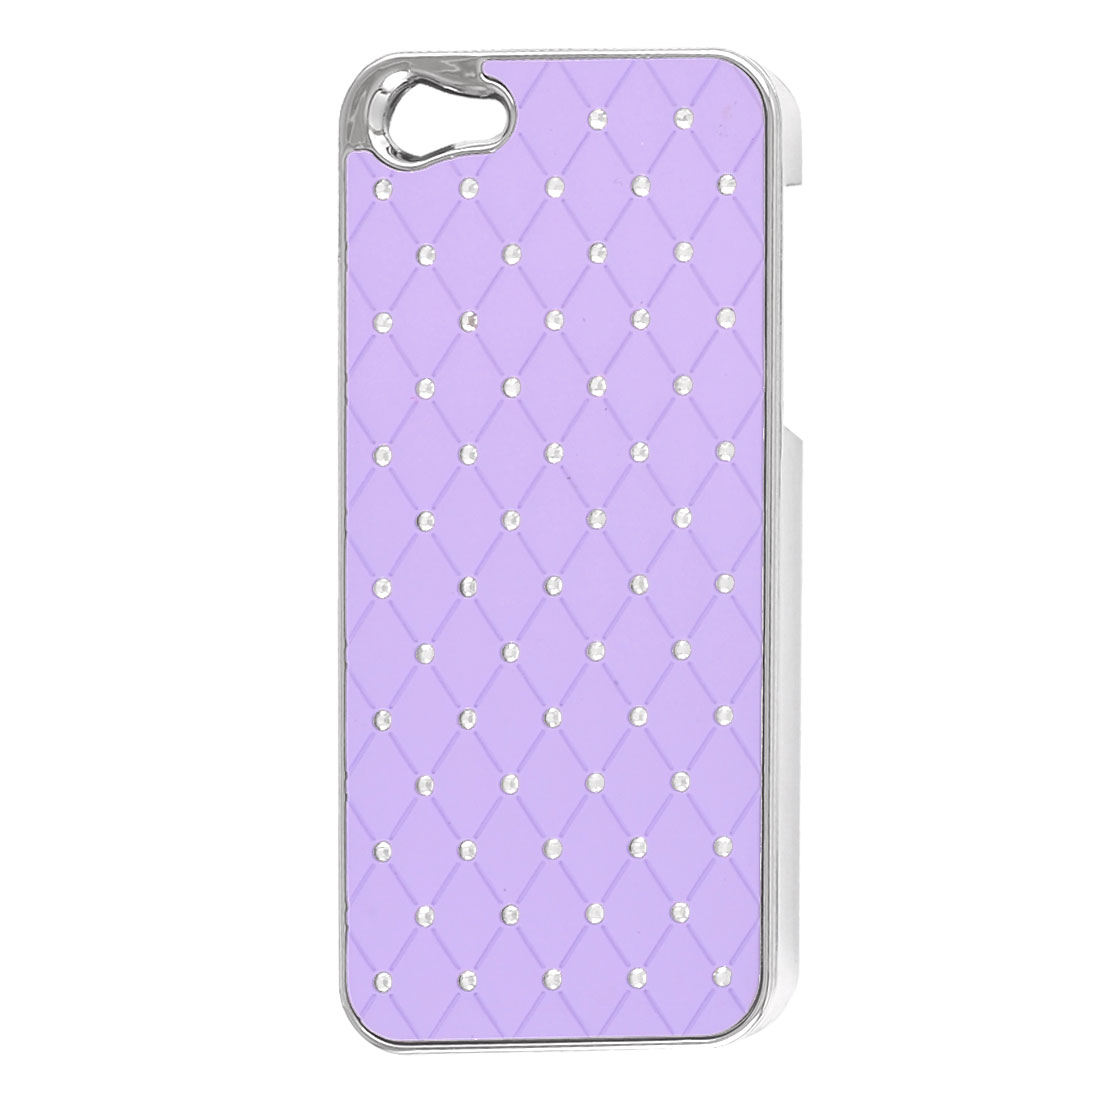 Light Purple Faux Leather Coated Rhinestone Hard Back Case Cover for iPhone 5 5G